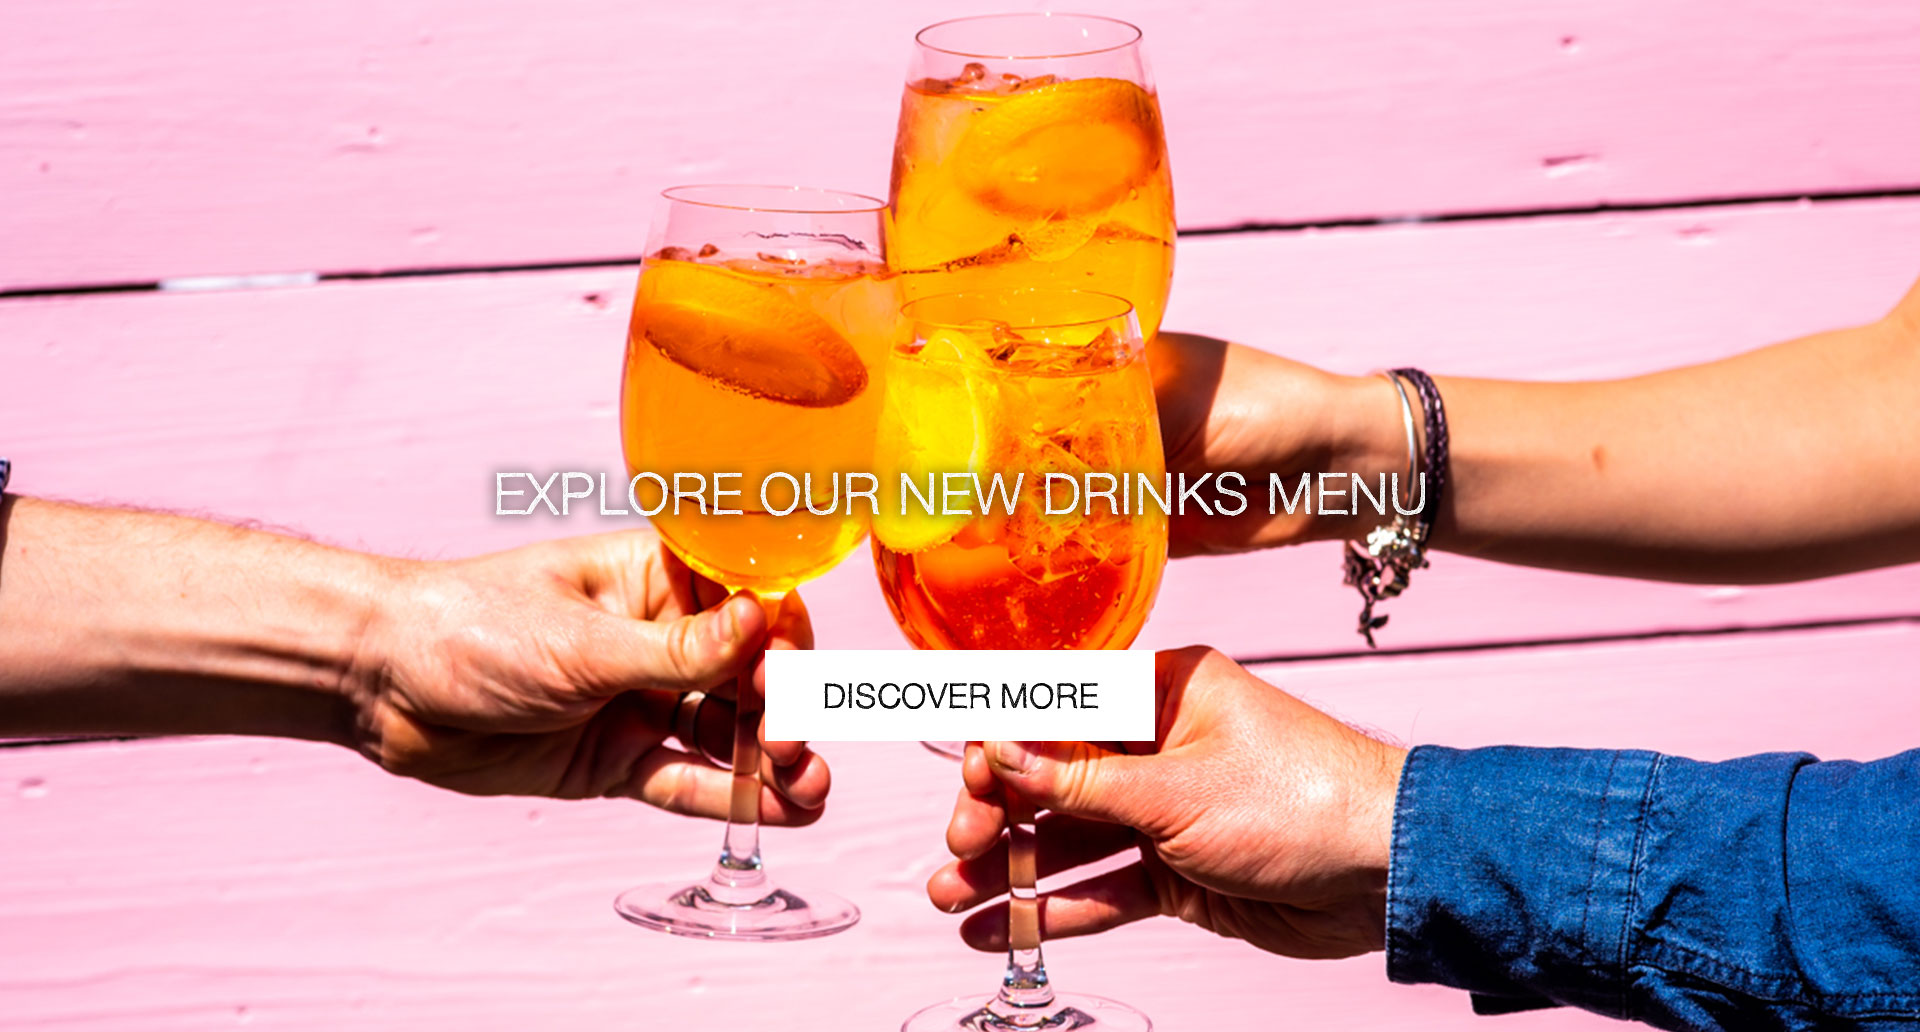 Our New Drinks Menu at Nation of Shopkeepers